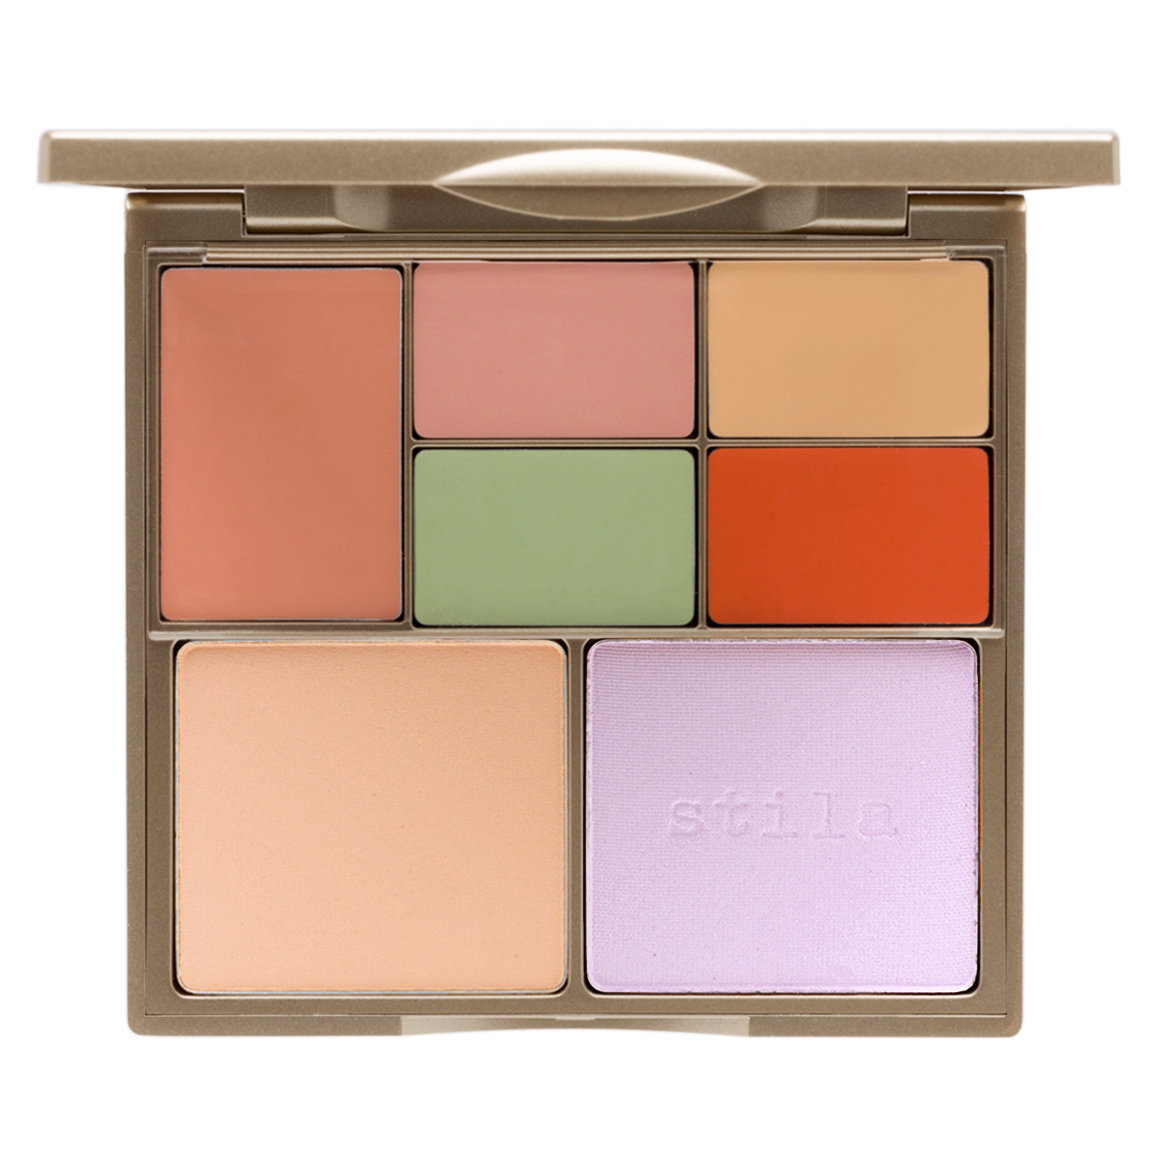 Stila Correct & Perfect All-In-One Color Correcting Palette product smear.